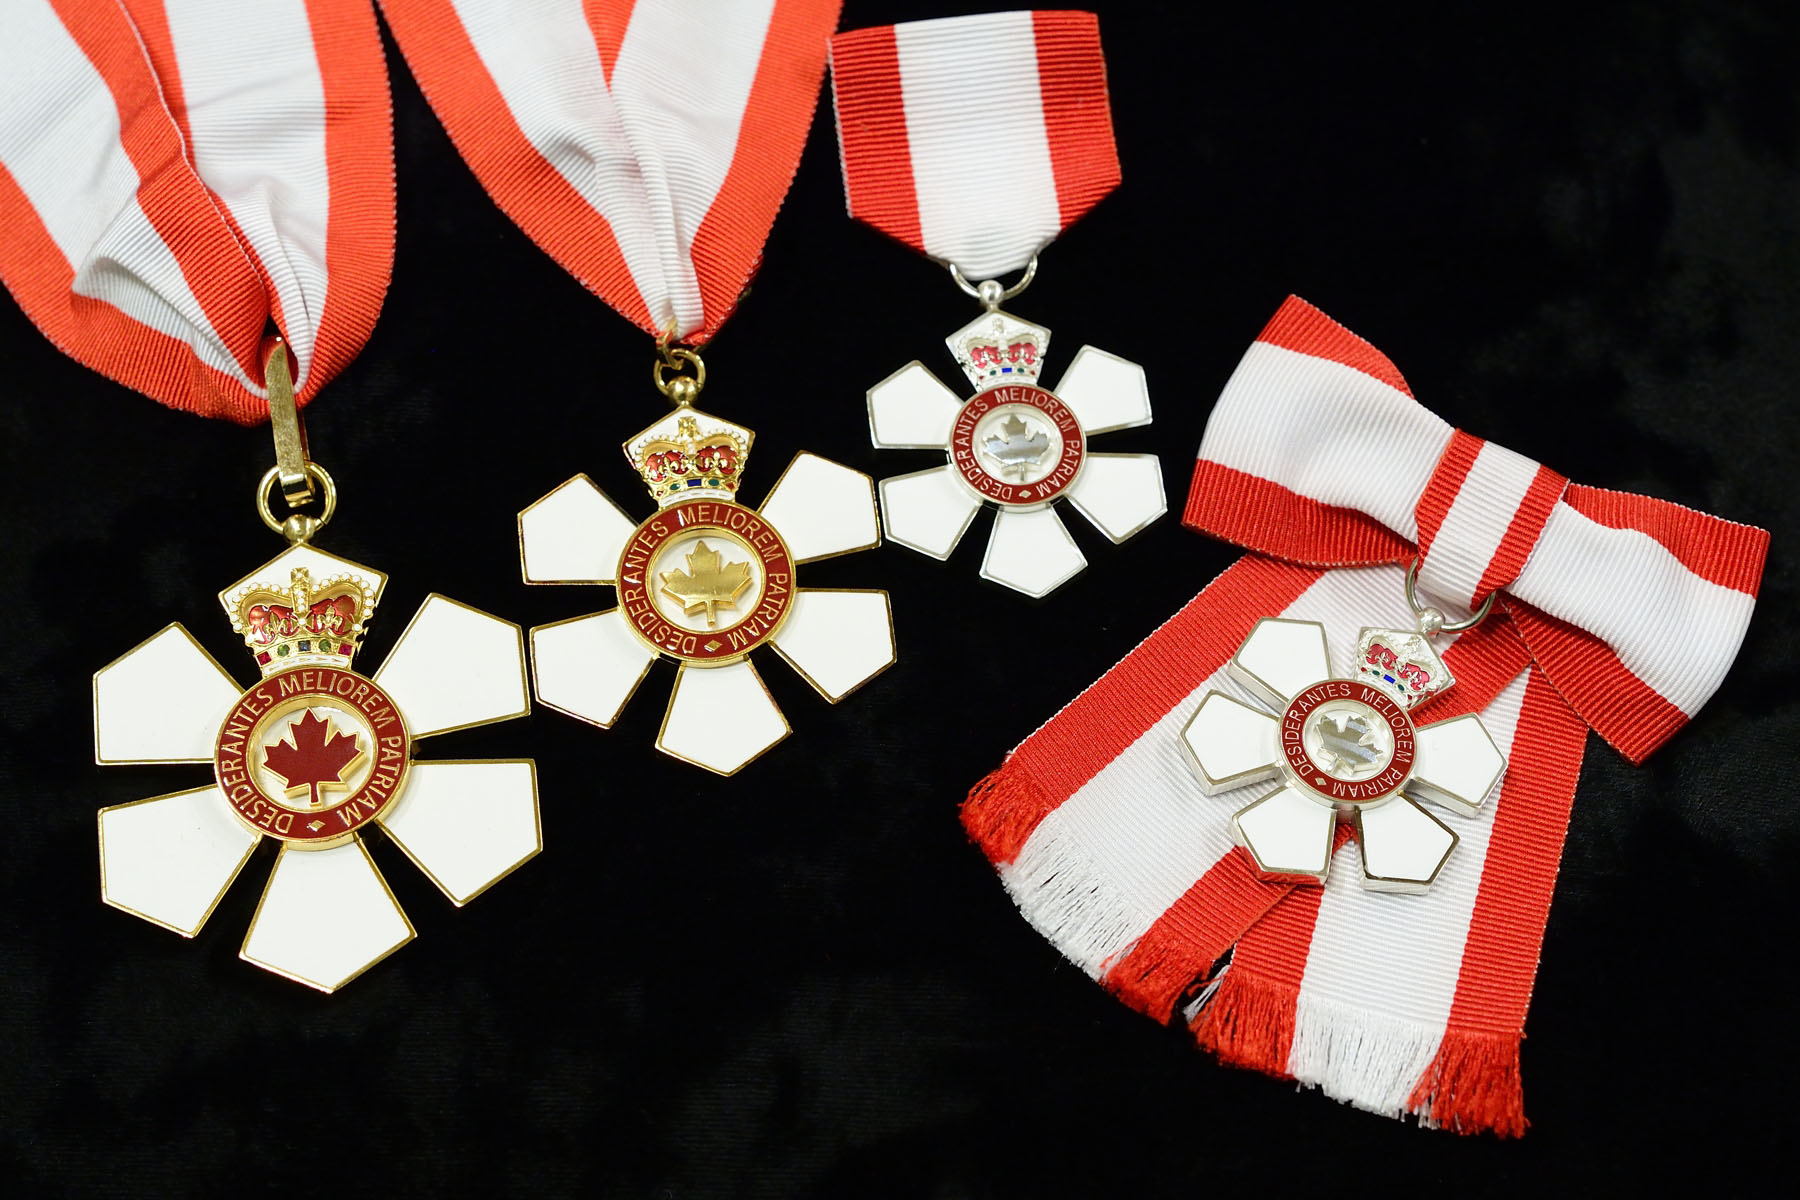 On February 17, 2017, Governor General David Johnston invested 42 recipients into the Order of Canada, one of our country's highest honour, during the year's first investiture ceremony at Rideau Hall.